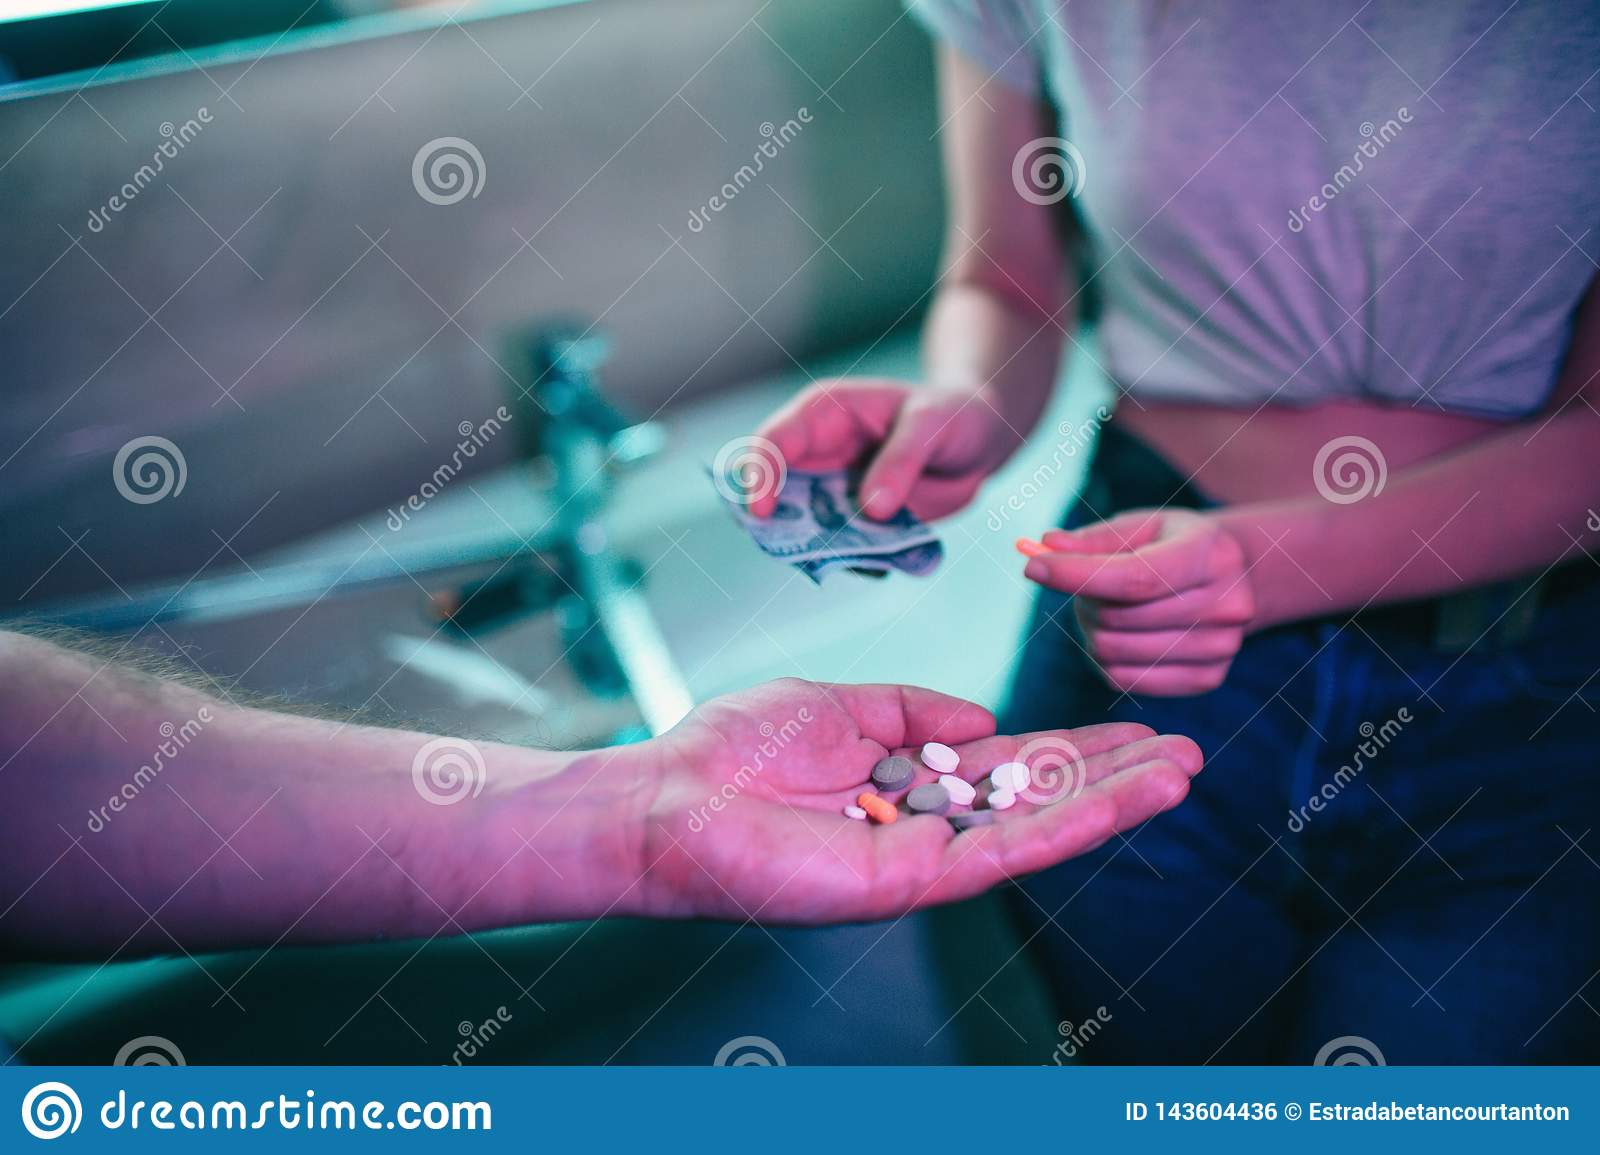 Buying drugs. Drug trafficking and sale. Hand of drug addict with money buying drugs from drug dealer in night club